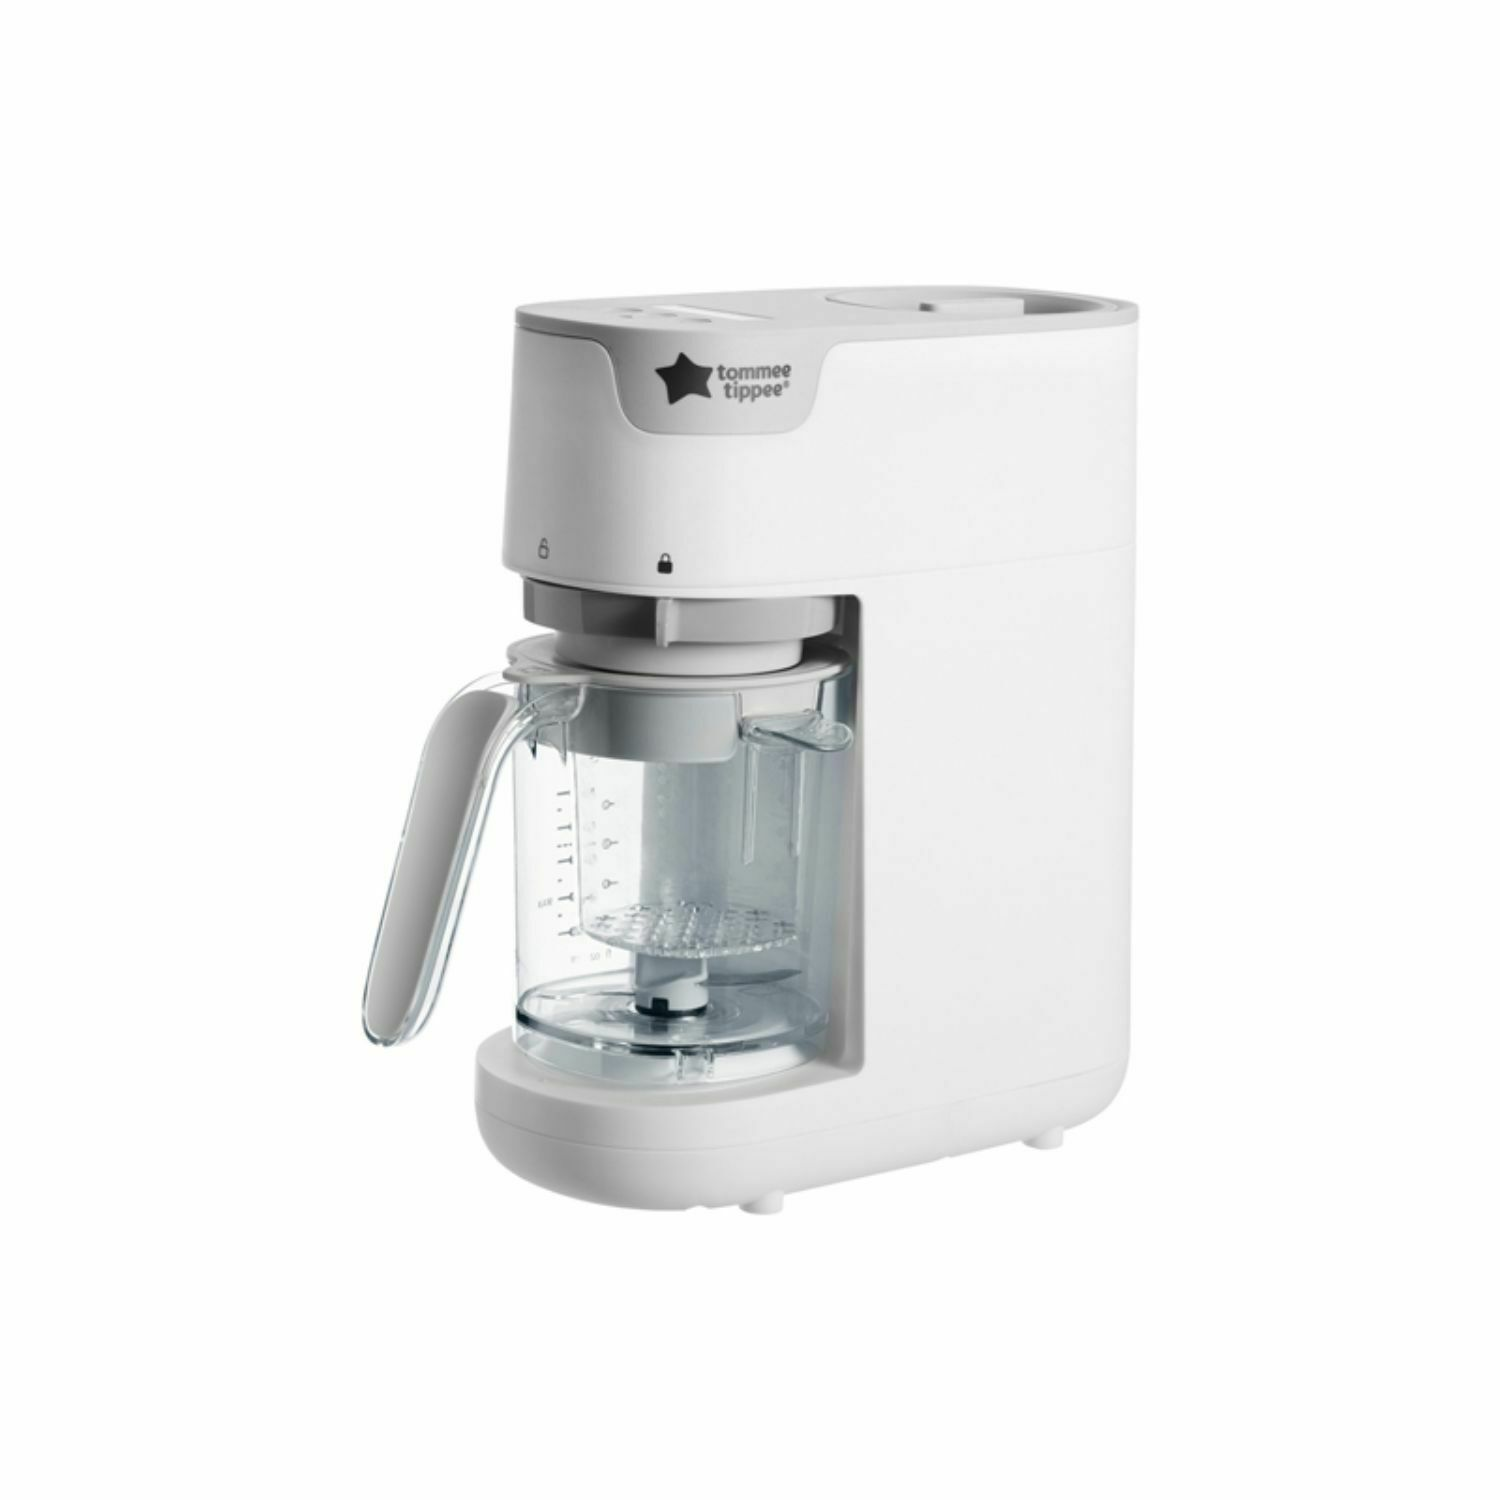 Tommee Tippee Food Steamer Blender (The Clash)